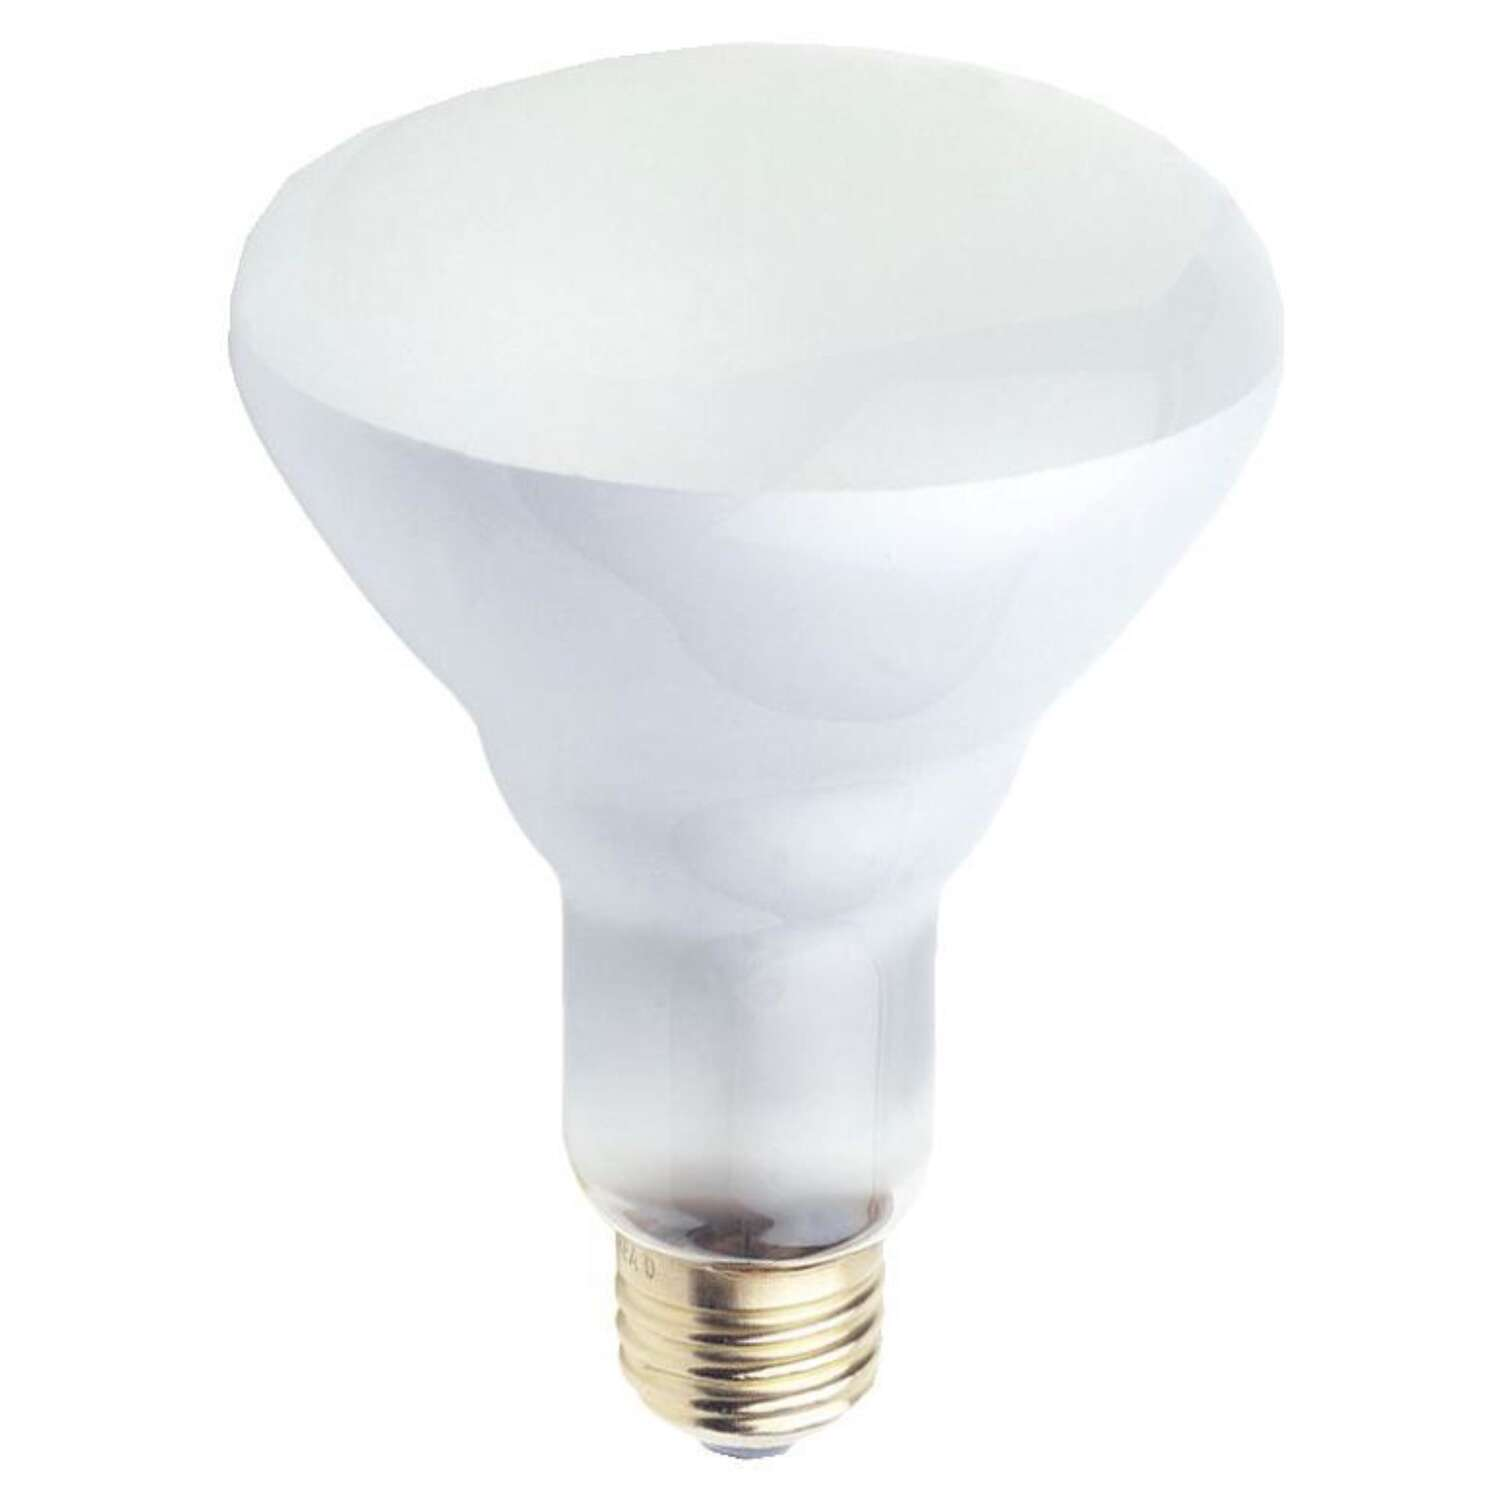 Westinghouse  65 watt BR30  Spotlight  Incandescent Bulb  E26 (Medium)  White  1 pk